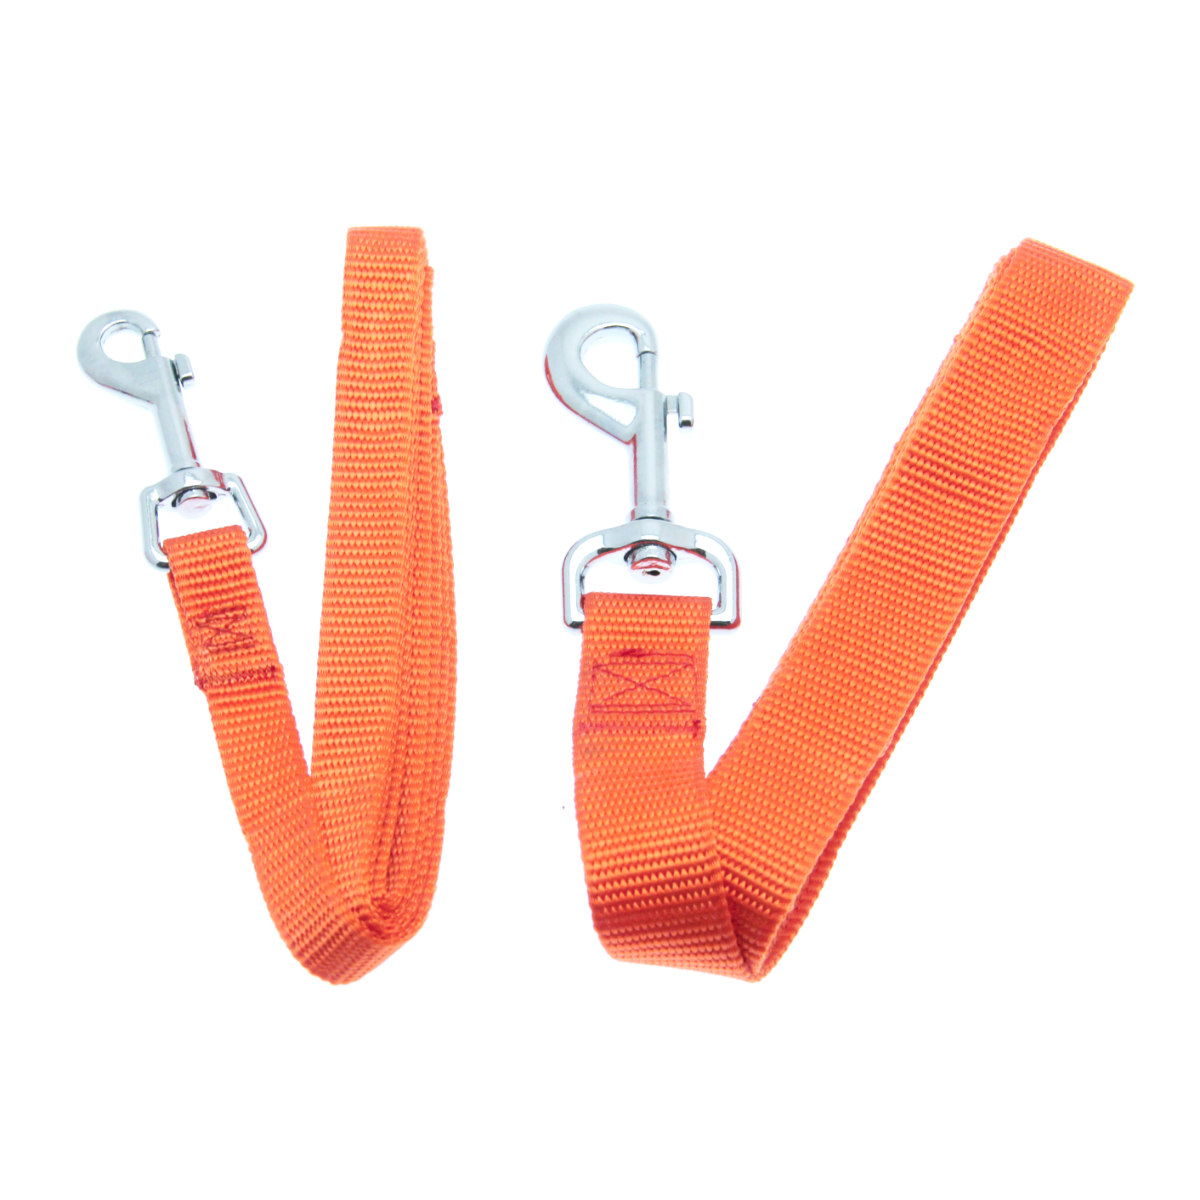 Barking Basics Dog Leash - Orange